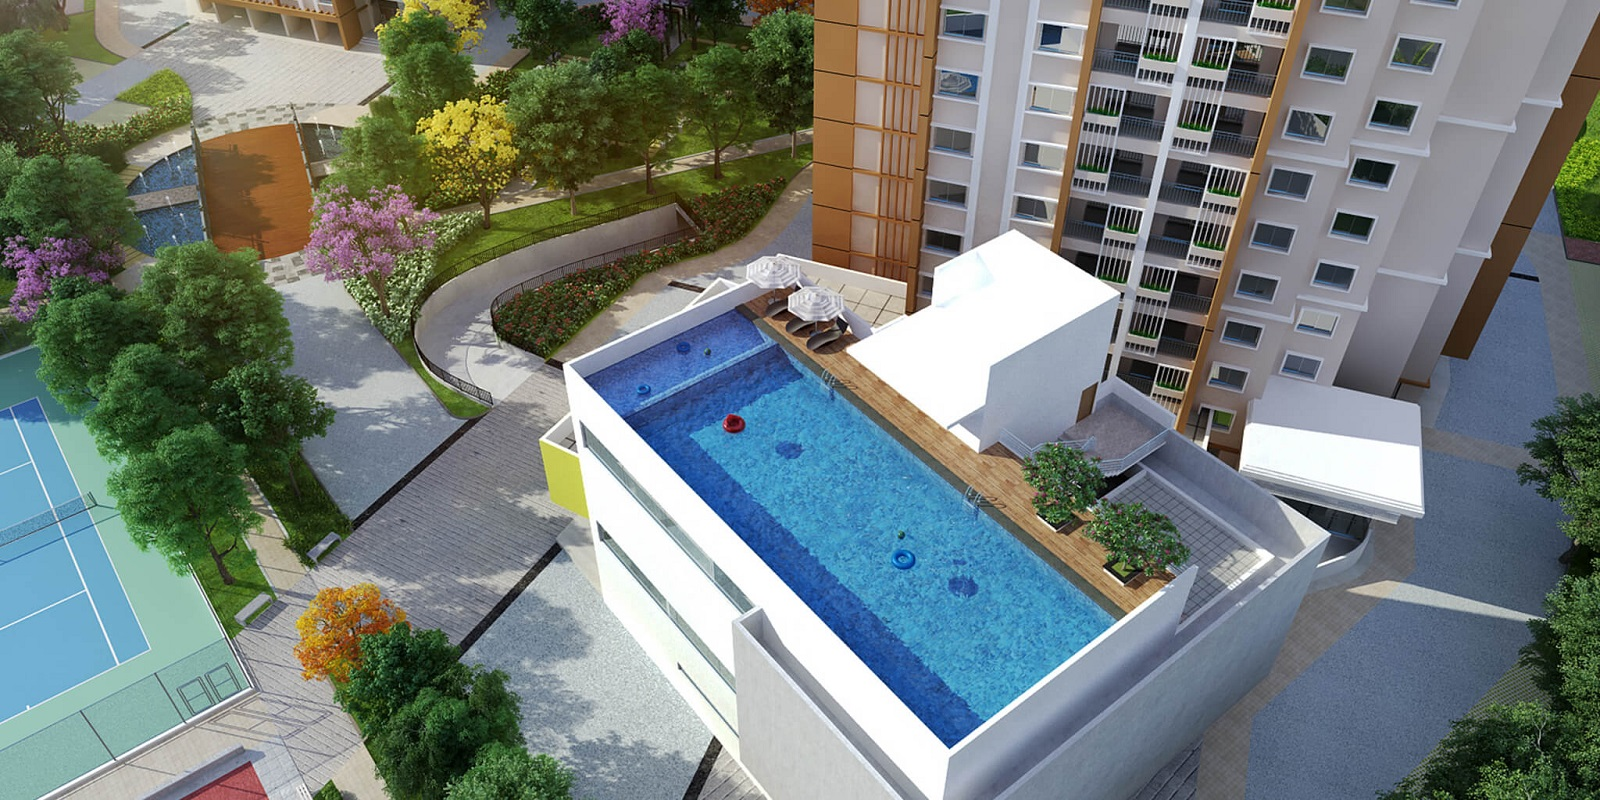 brigade 7 gardens amenities features7